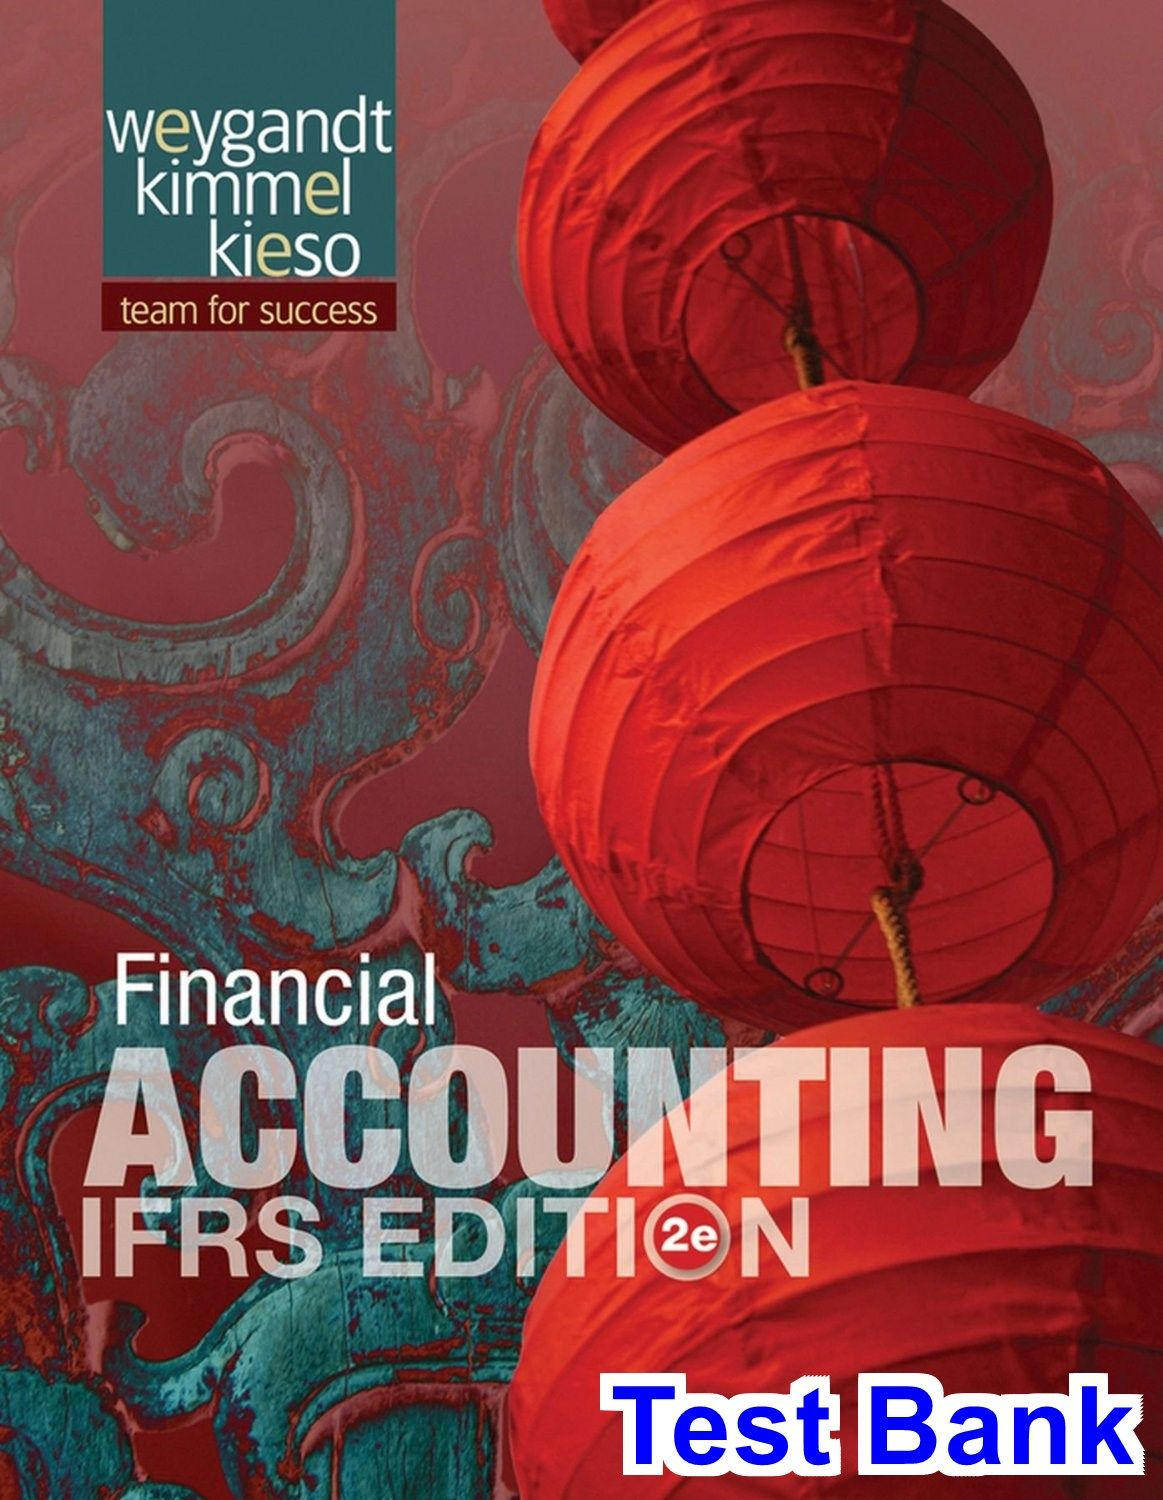 Financial accounting ifrs edition 2nd edition weygandt test bank financial accounting ifrs edition 2nd edition weygandt test bank test bank solutions manual fandeluxe Images